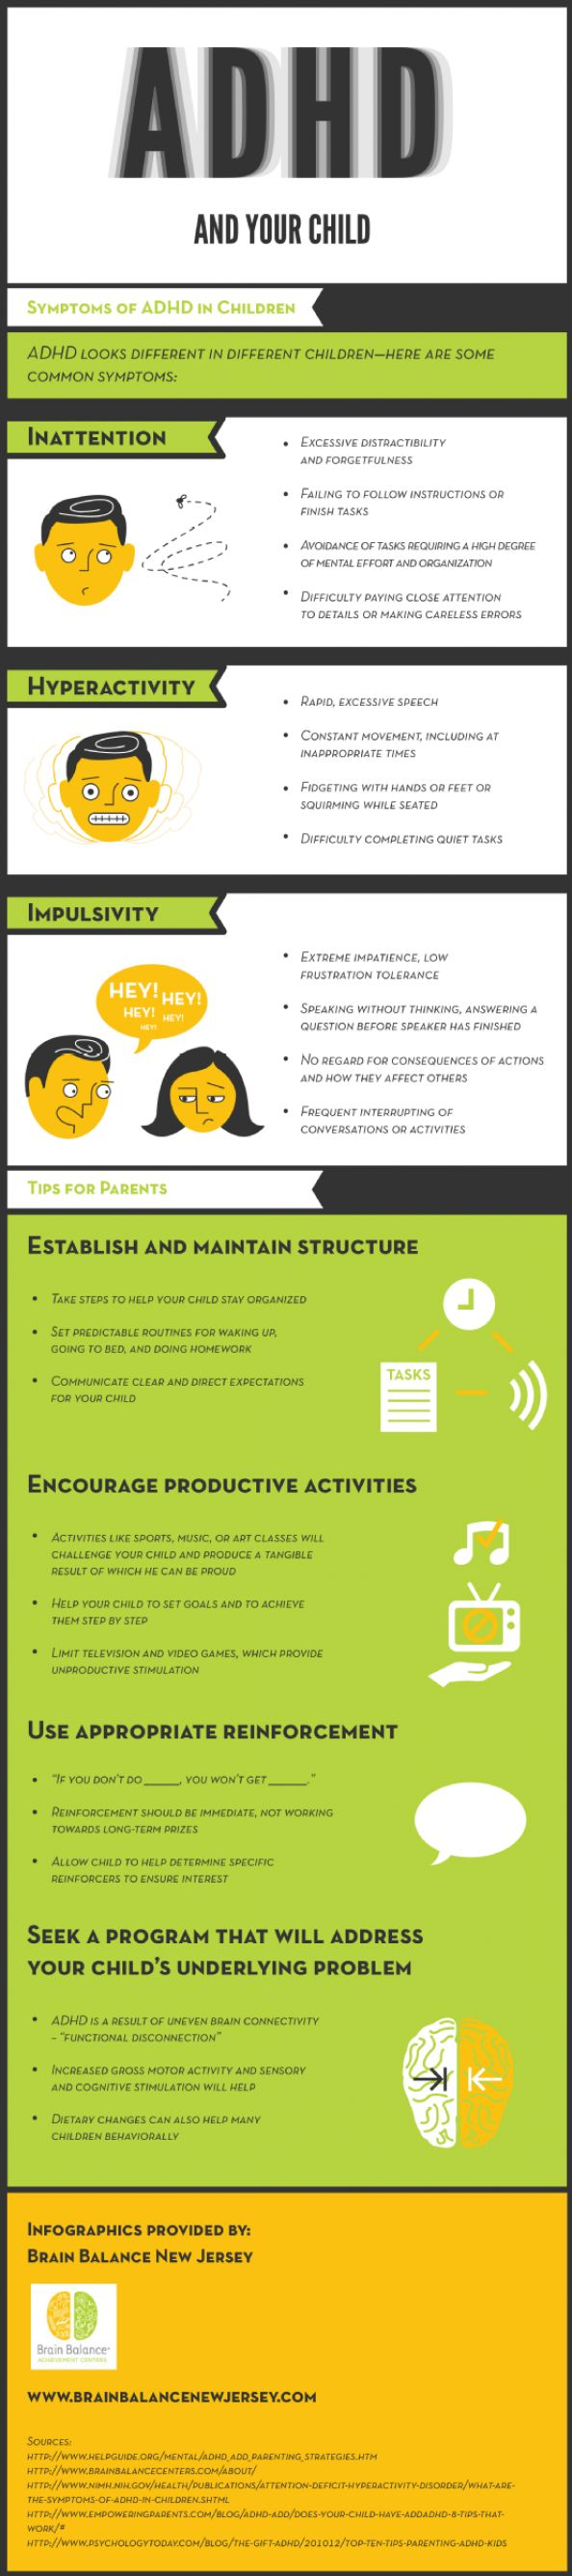 ADHD and Your Child Infographic